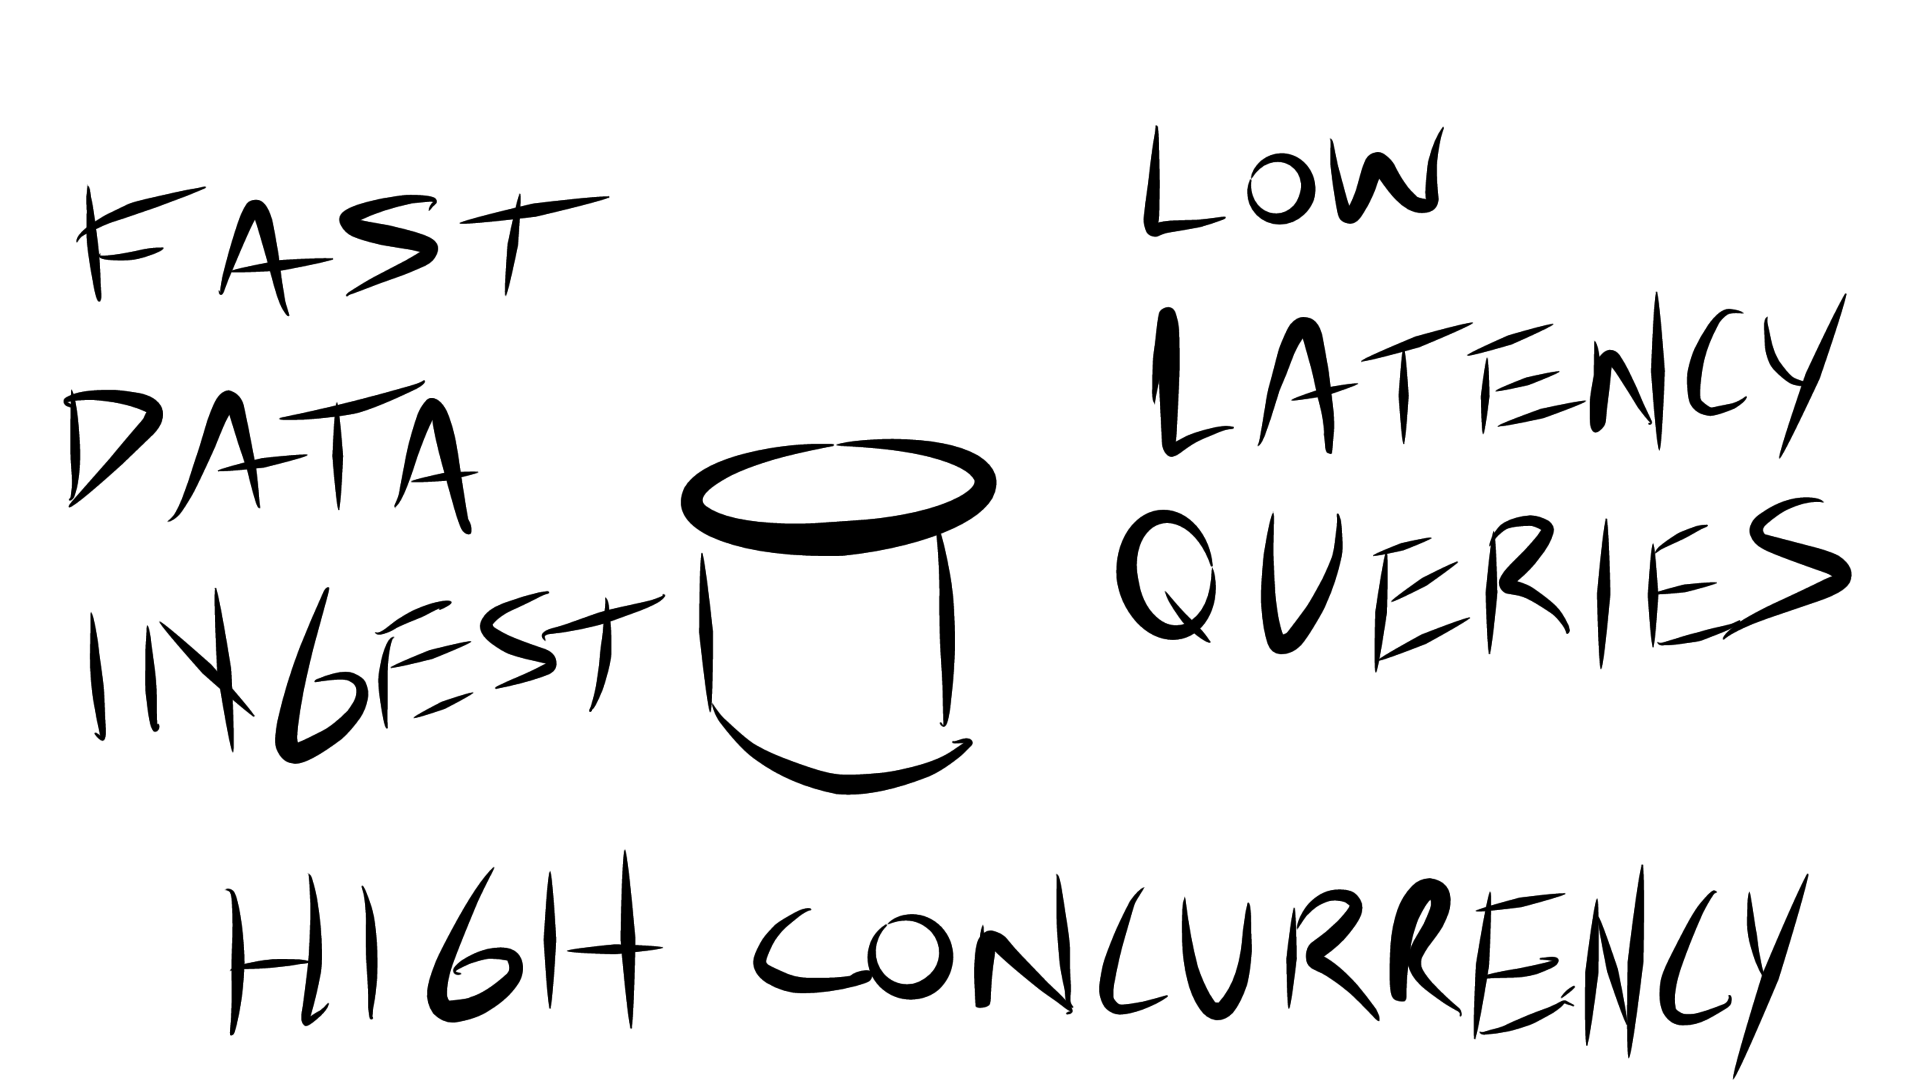 Fast Ingest Low Latency Queries High Concurrency